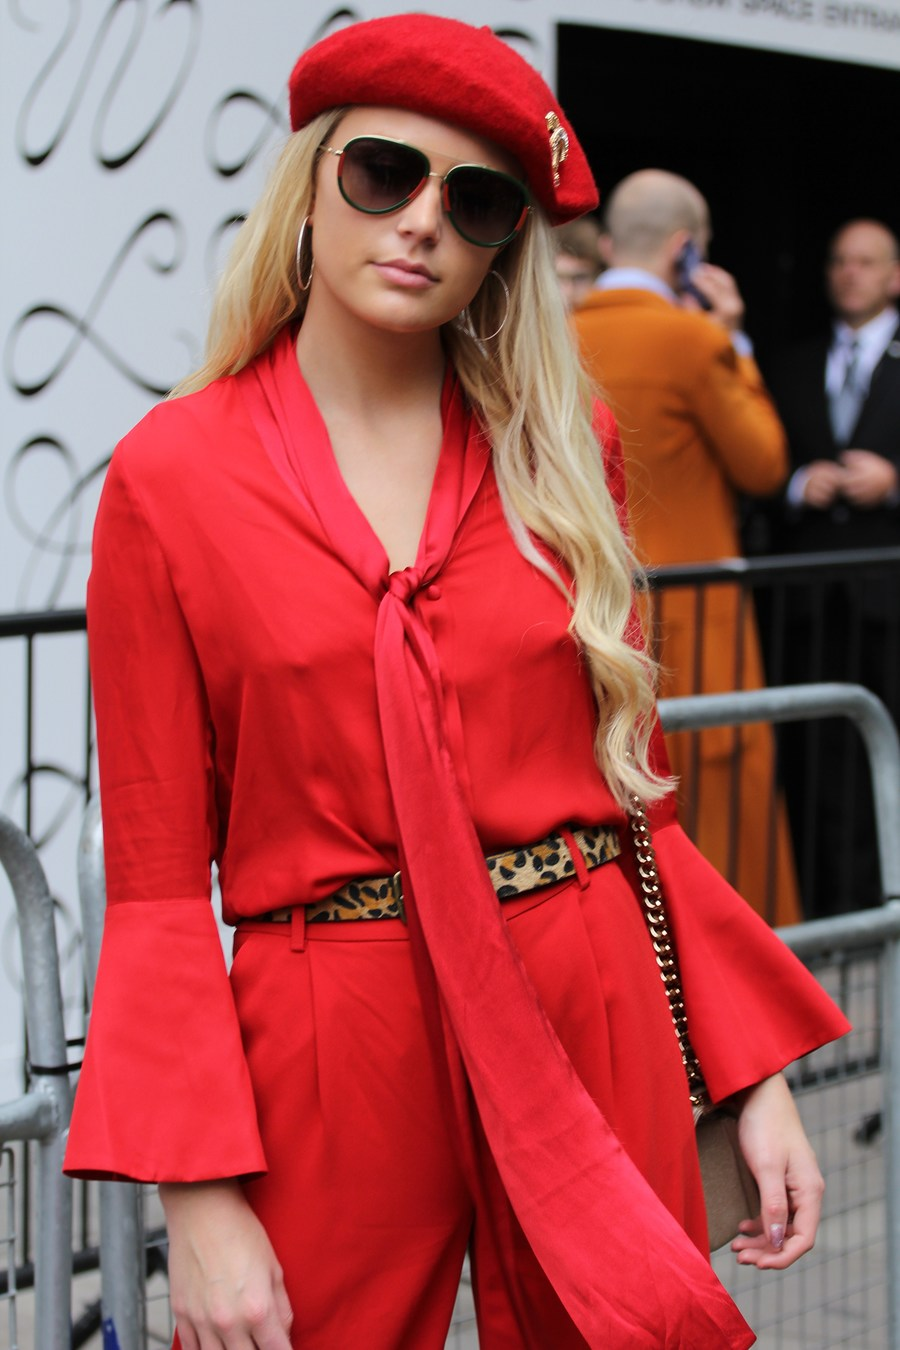 London Fashion Week (Sep) 2019 / Photography by DaveinSurrey / Uploaded 21st September 2019 @ 04:24 PM